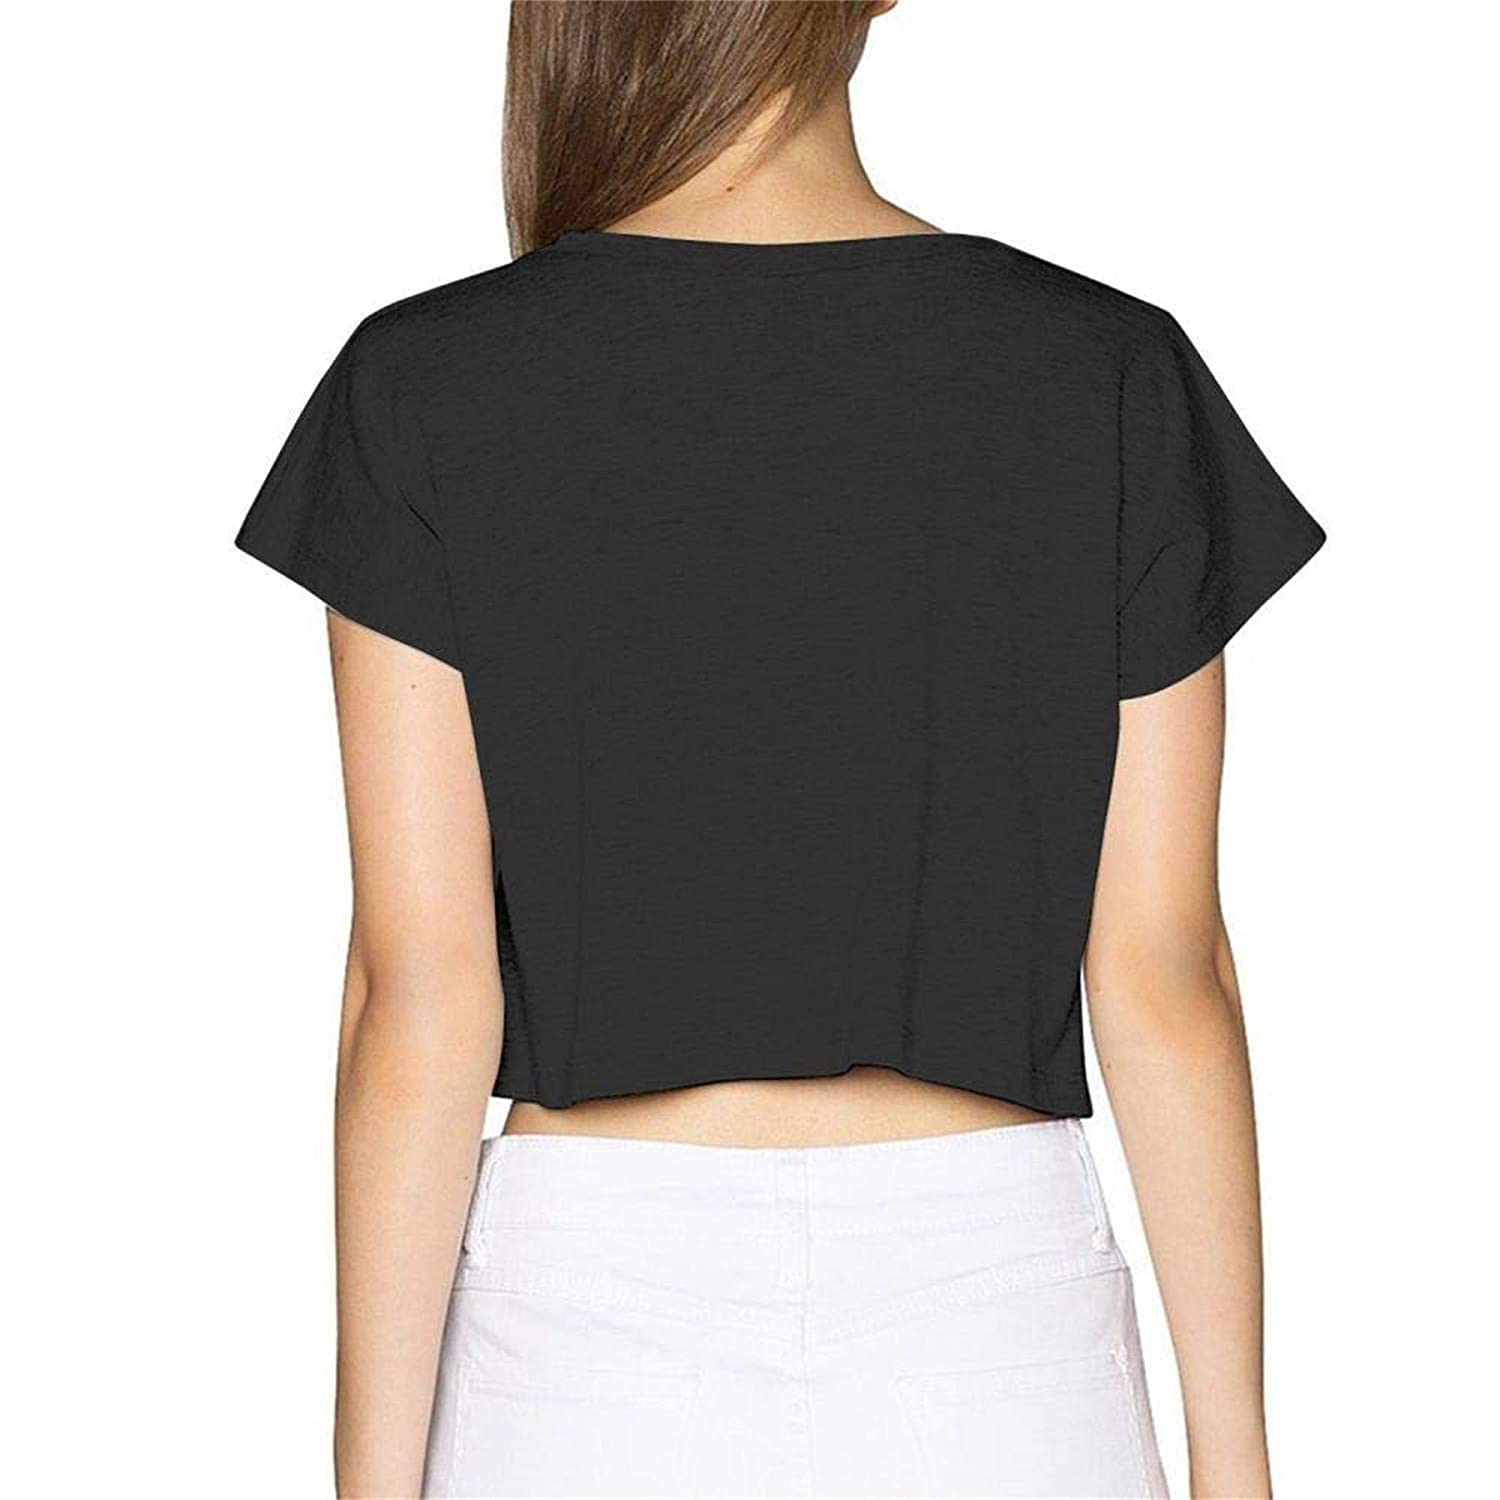 Seuriamin Sleeping Panda Cute Womens Tops Short Sleeve Leak Navel Crew Neck Tee Blouses Tops